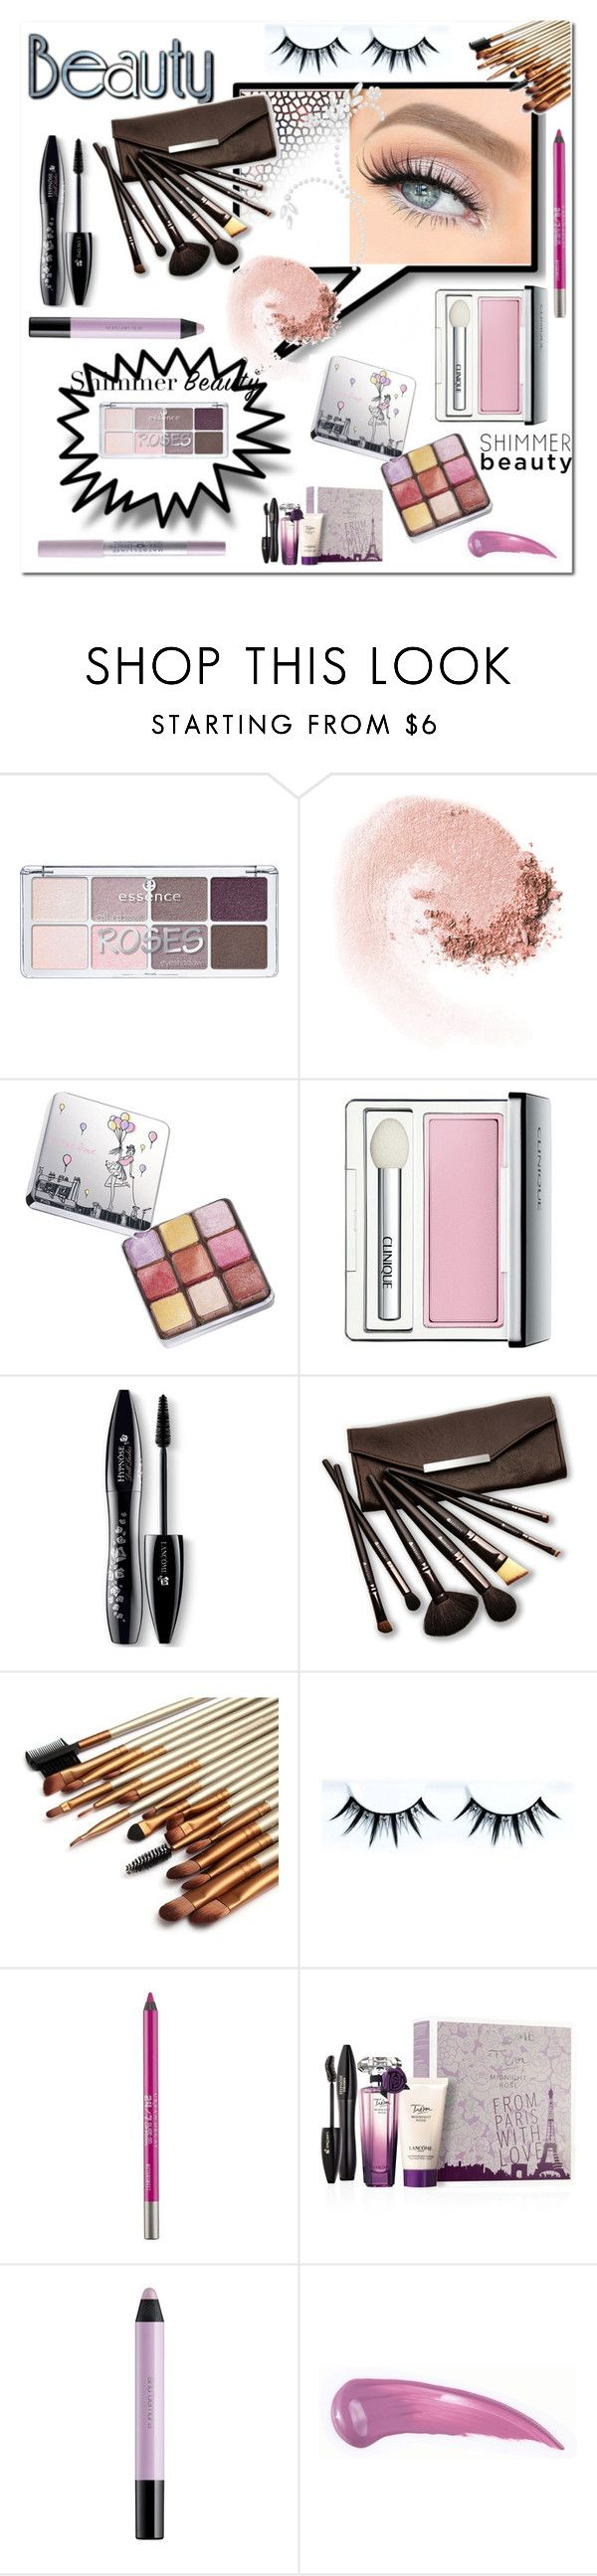 """""""Shimmer Beauty"""" by ilona-828 ❤ liked on Polyvore featuring beauty, NARS Cosmetics, Lancôme, Clinique, Borghese, Urban Decay, shu uemura, Maybelline, Beauty and shimmerbeauty"""